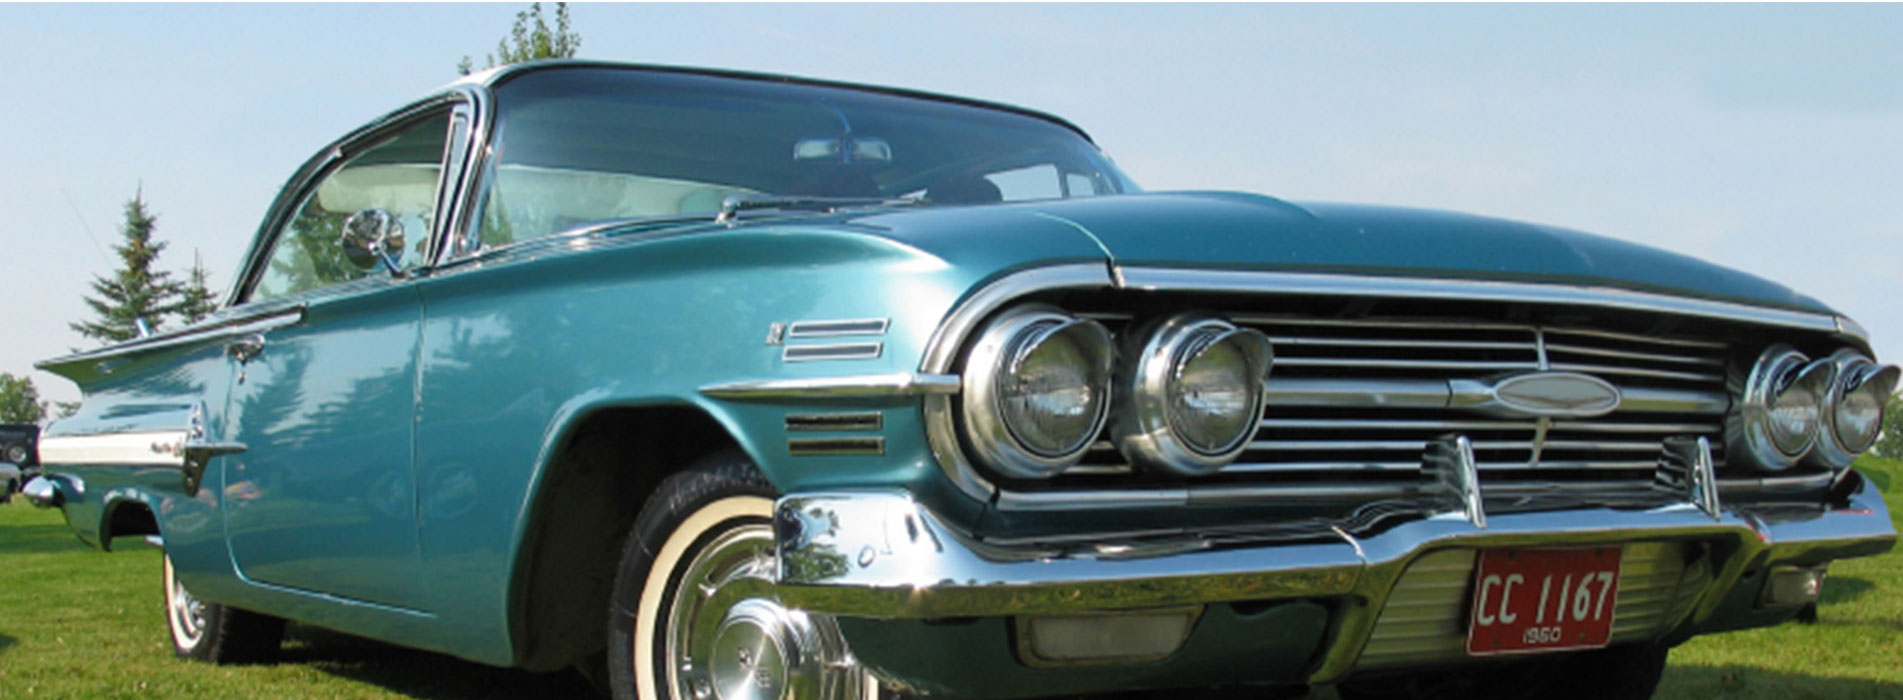 Iowa Classic Car insurance coverage